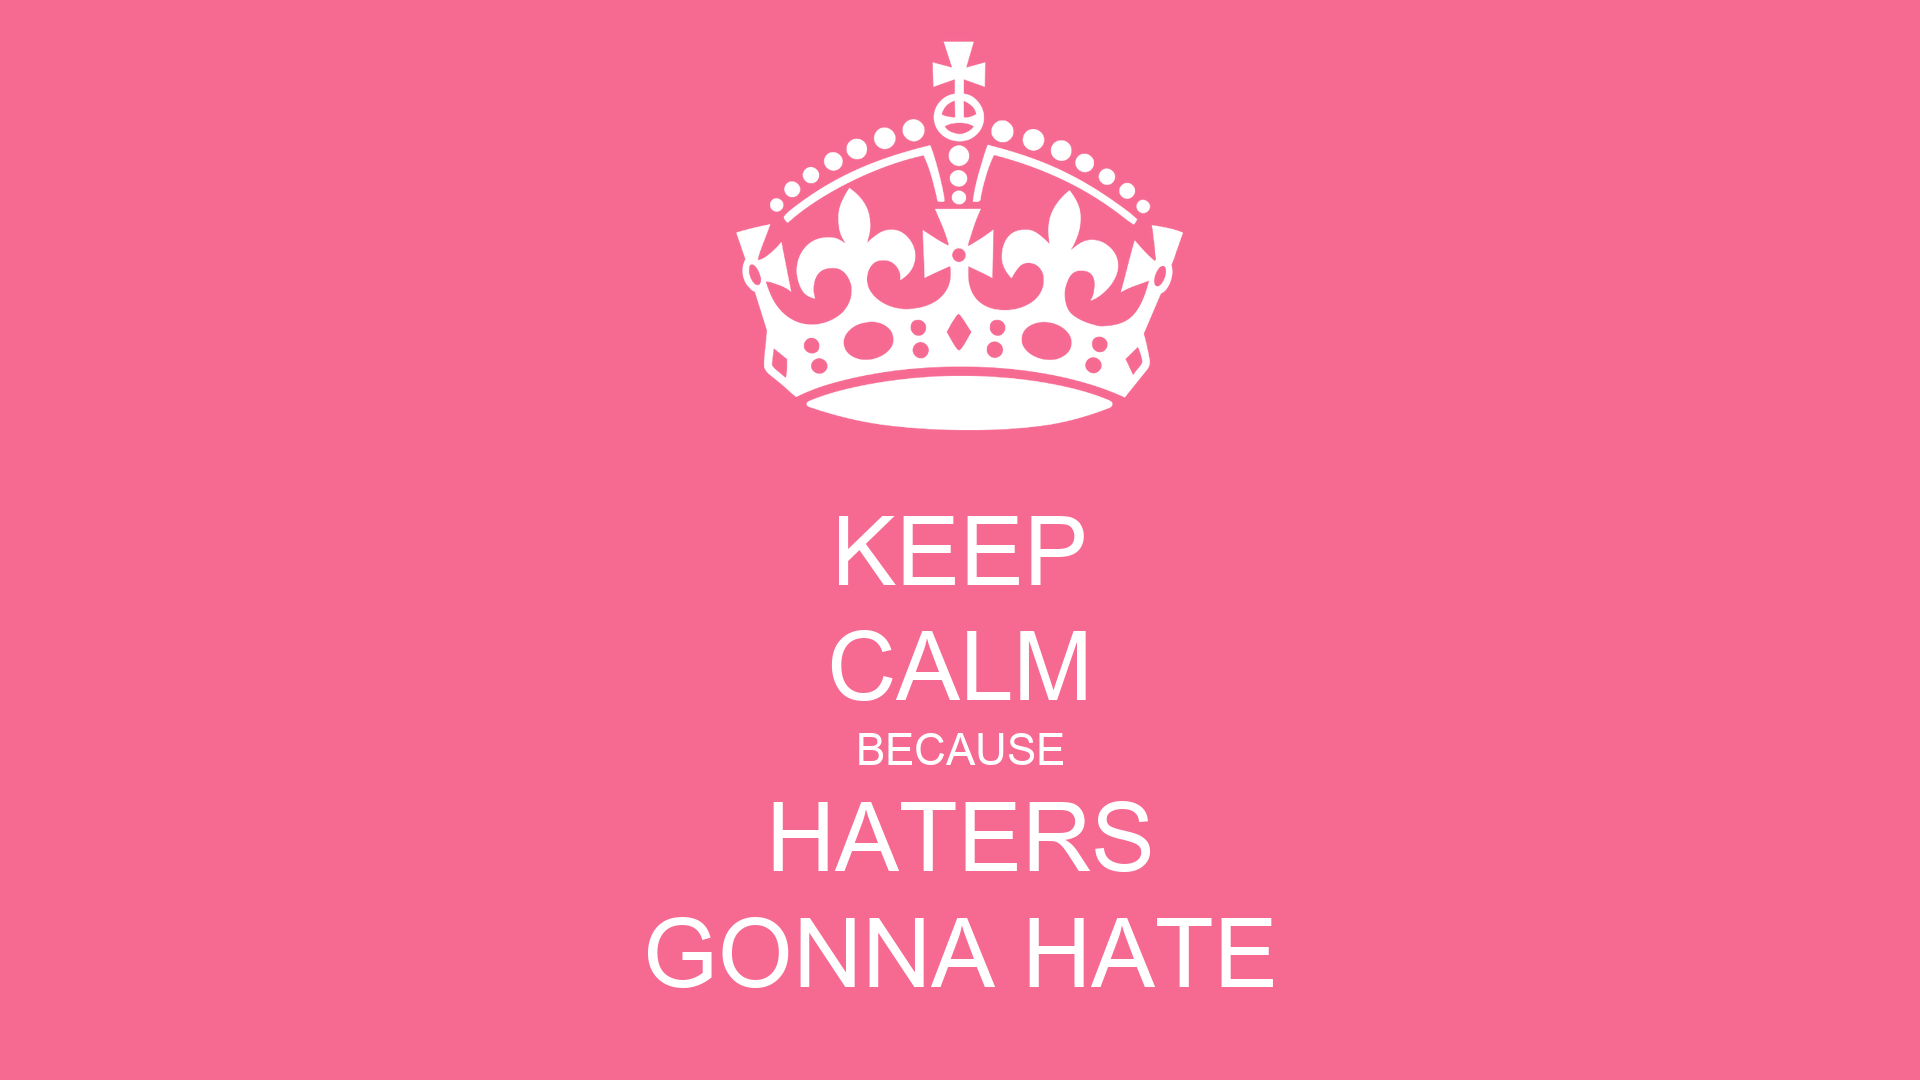 I Hate Technology Quotes: Keep Calm Quotes About Haters. QuotesGram